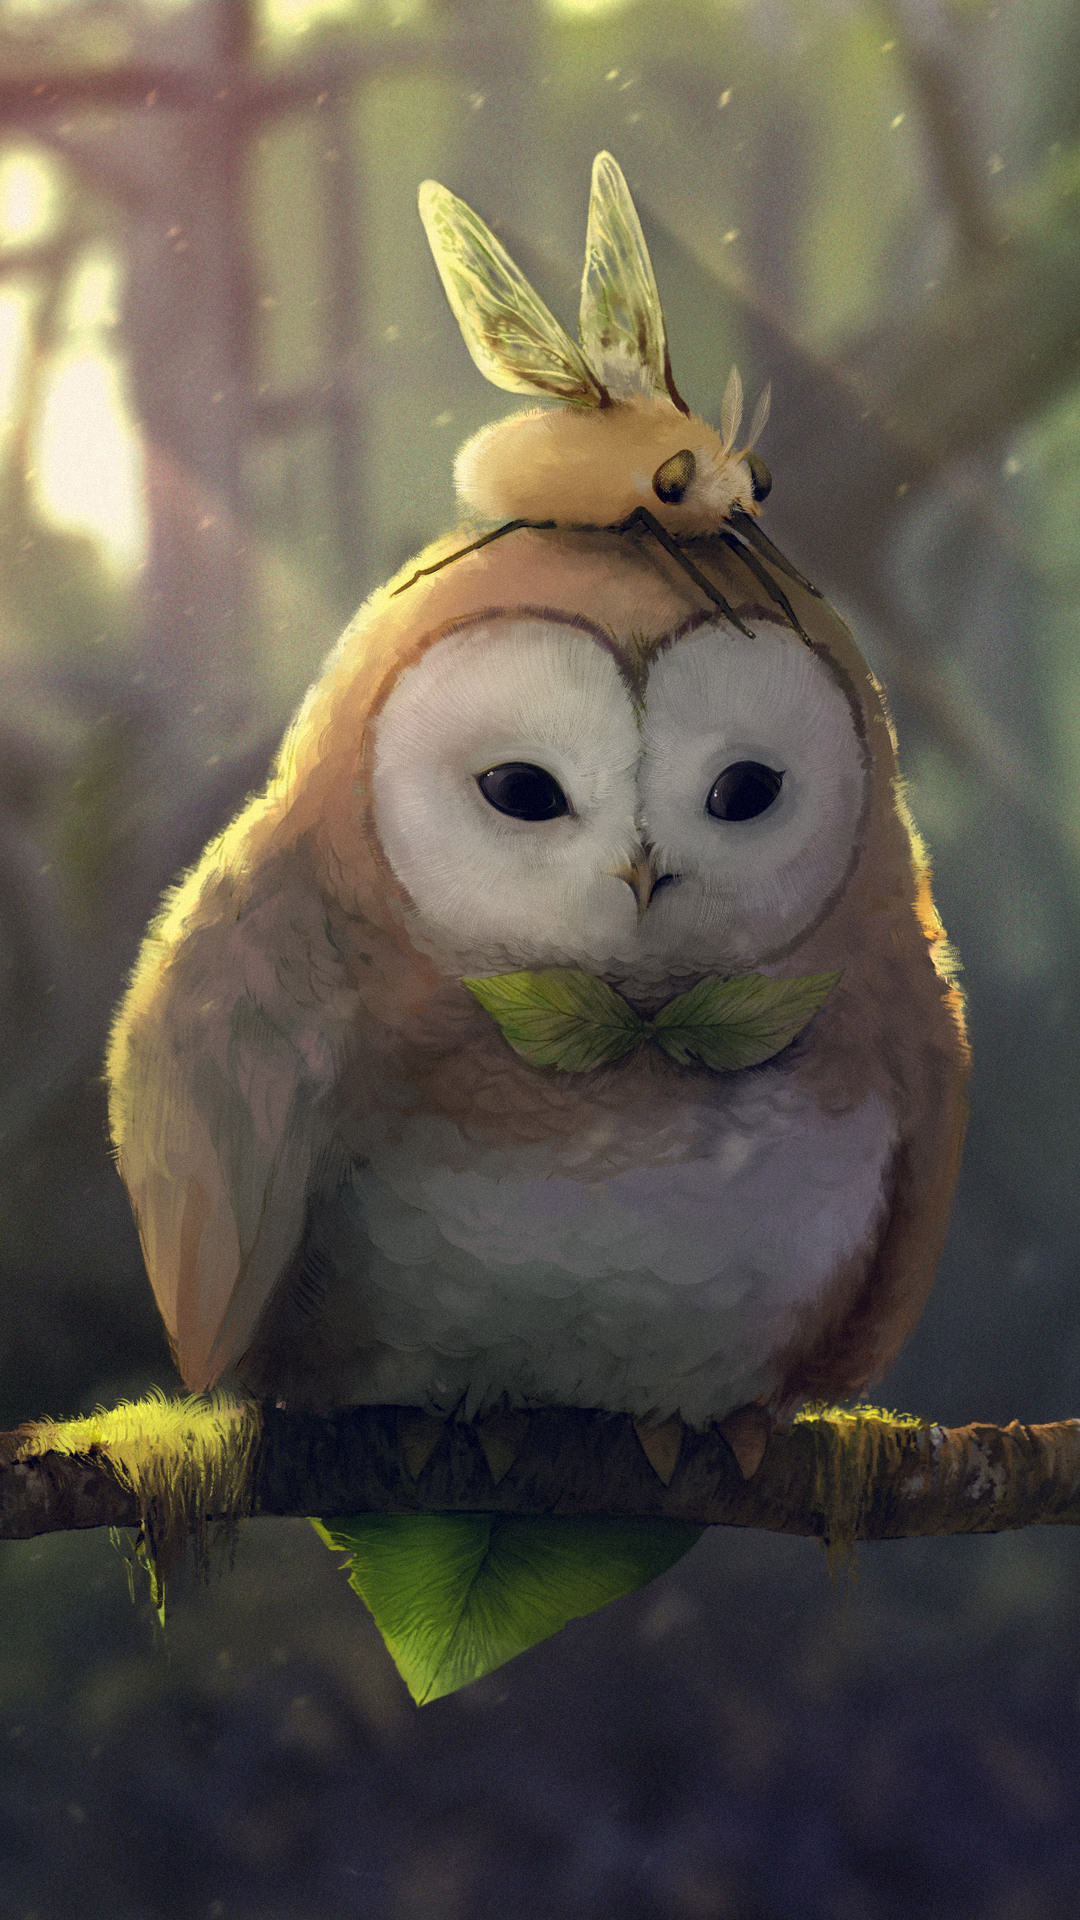 pokemon on iphone 1080x1920 tranquil owl iphone 7 6s 6 plus pixel xl one 2287